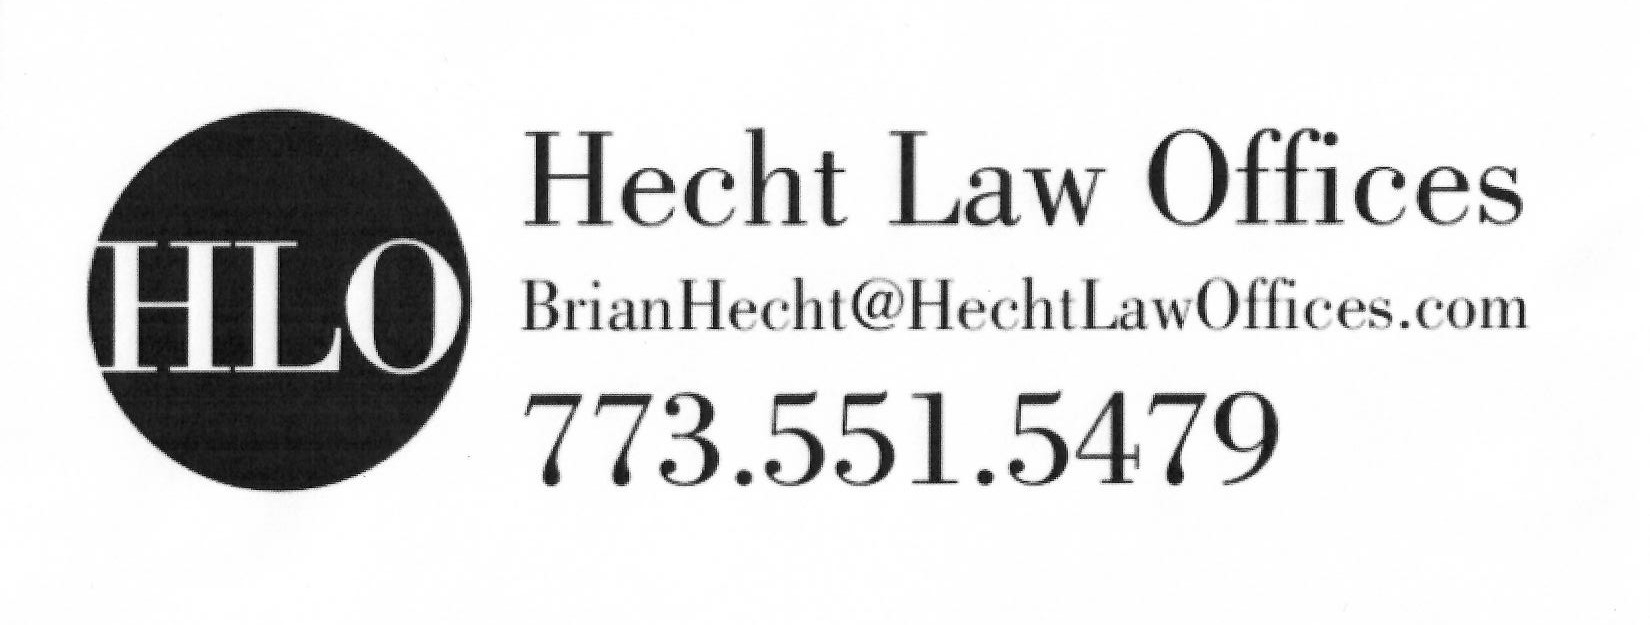 HECHT LAW OFFICES LOGO